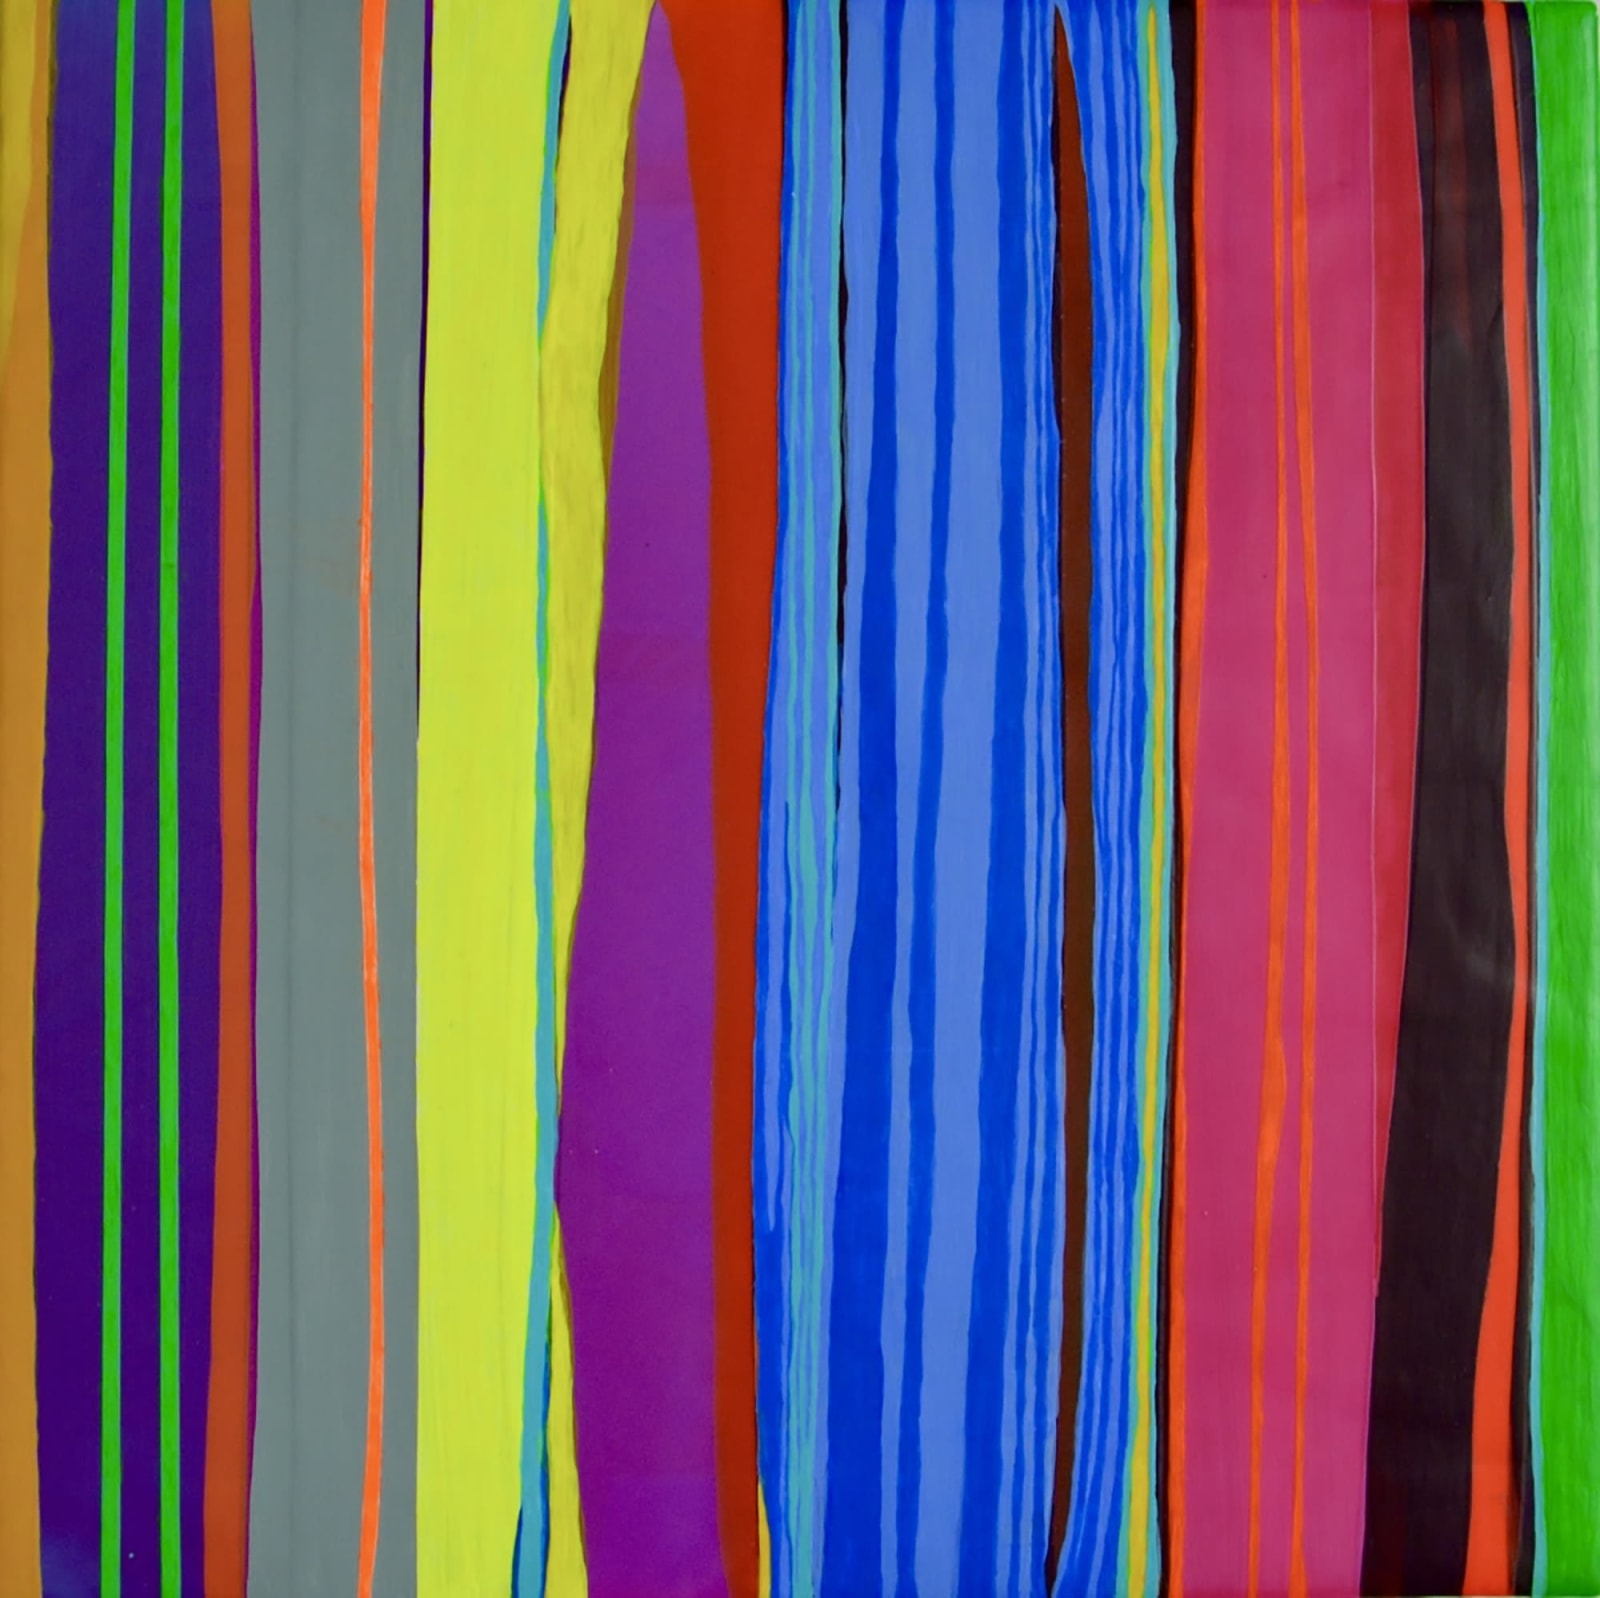 STRIPES, 2016 Acrylic on wood panel 12 x 12 in 30.5 x 30.5 cm HS 44